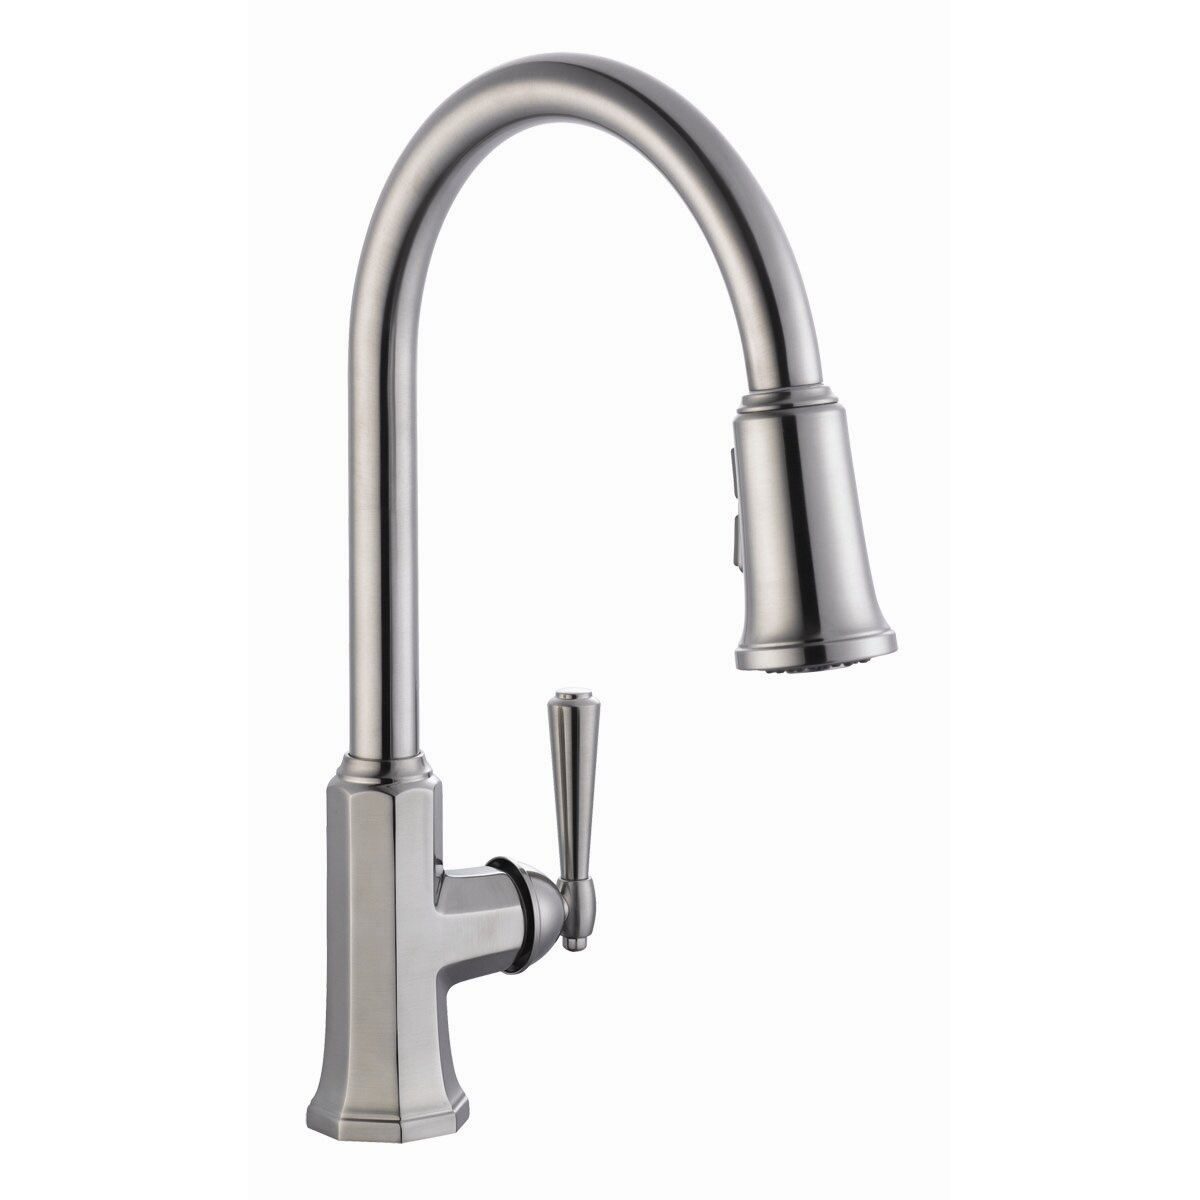 Design house barcelona single handle kitchen faucet with pullout sprayer reviews wayfair Design house kitchen faucets reviews